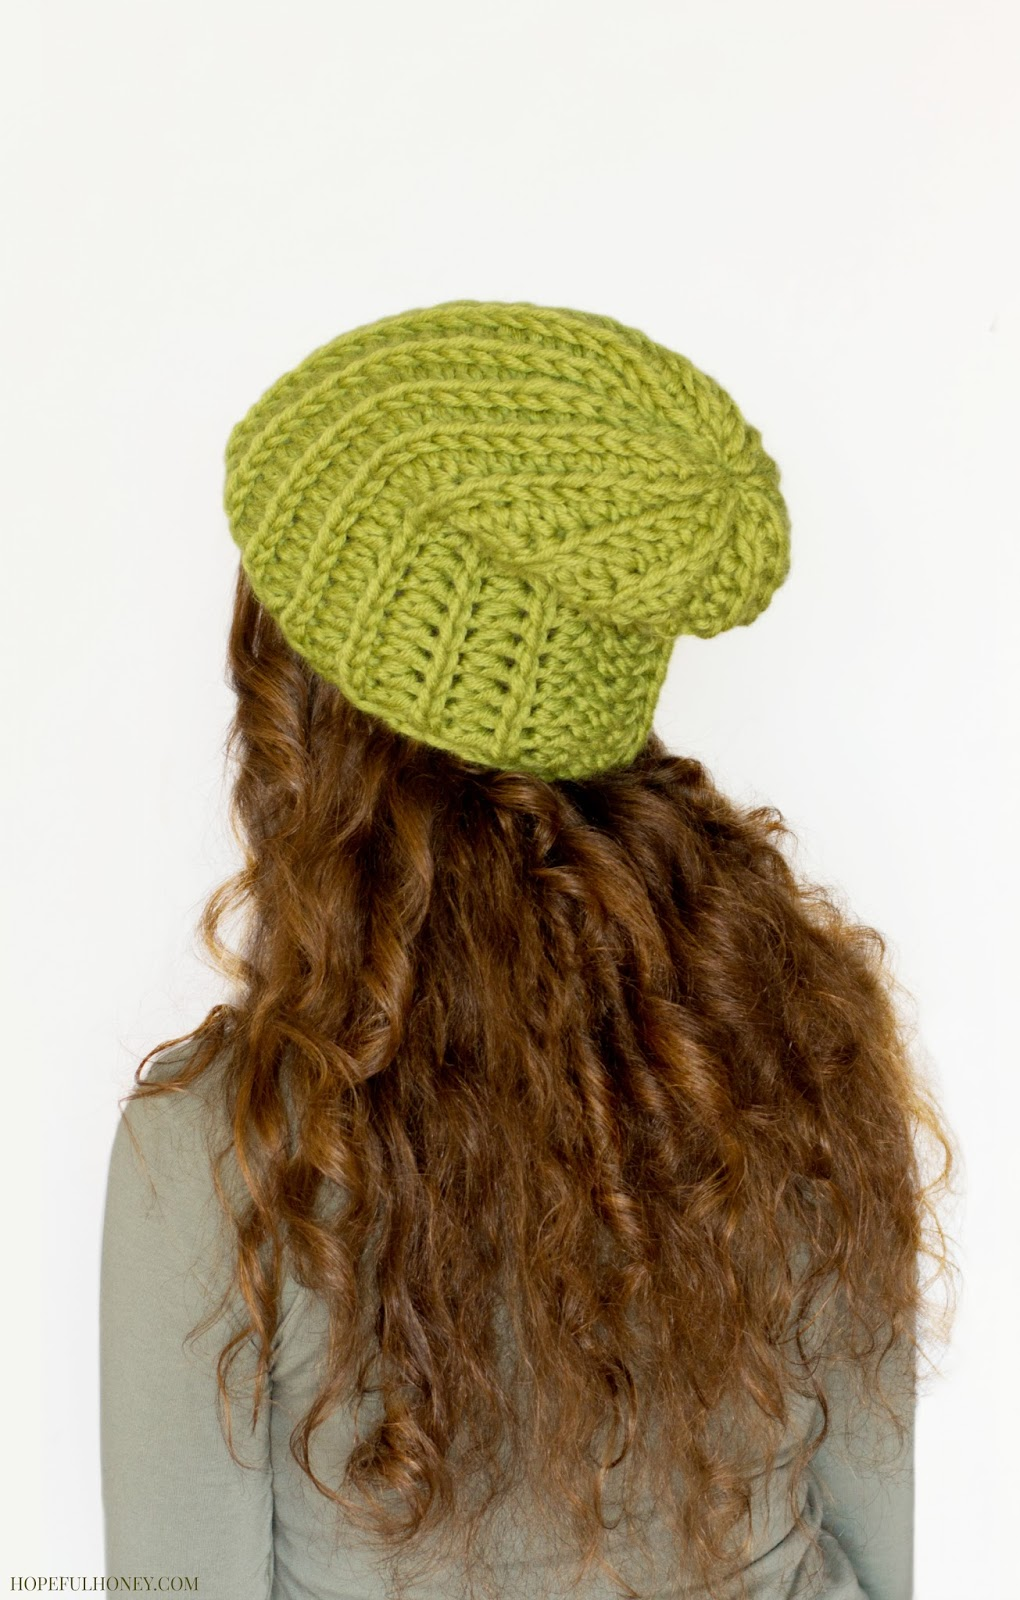 Crochet Pattern To Make A Beanie : Hopeful Honey Craft, Crochet, Create: Chunky Willow Tree ...